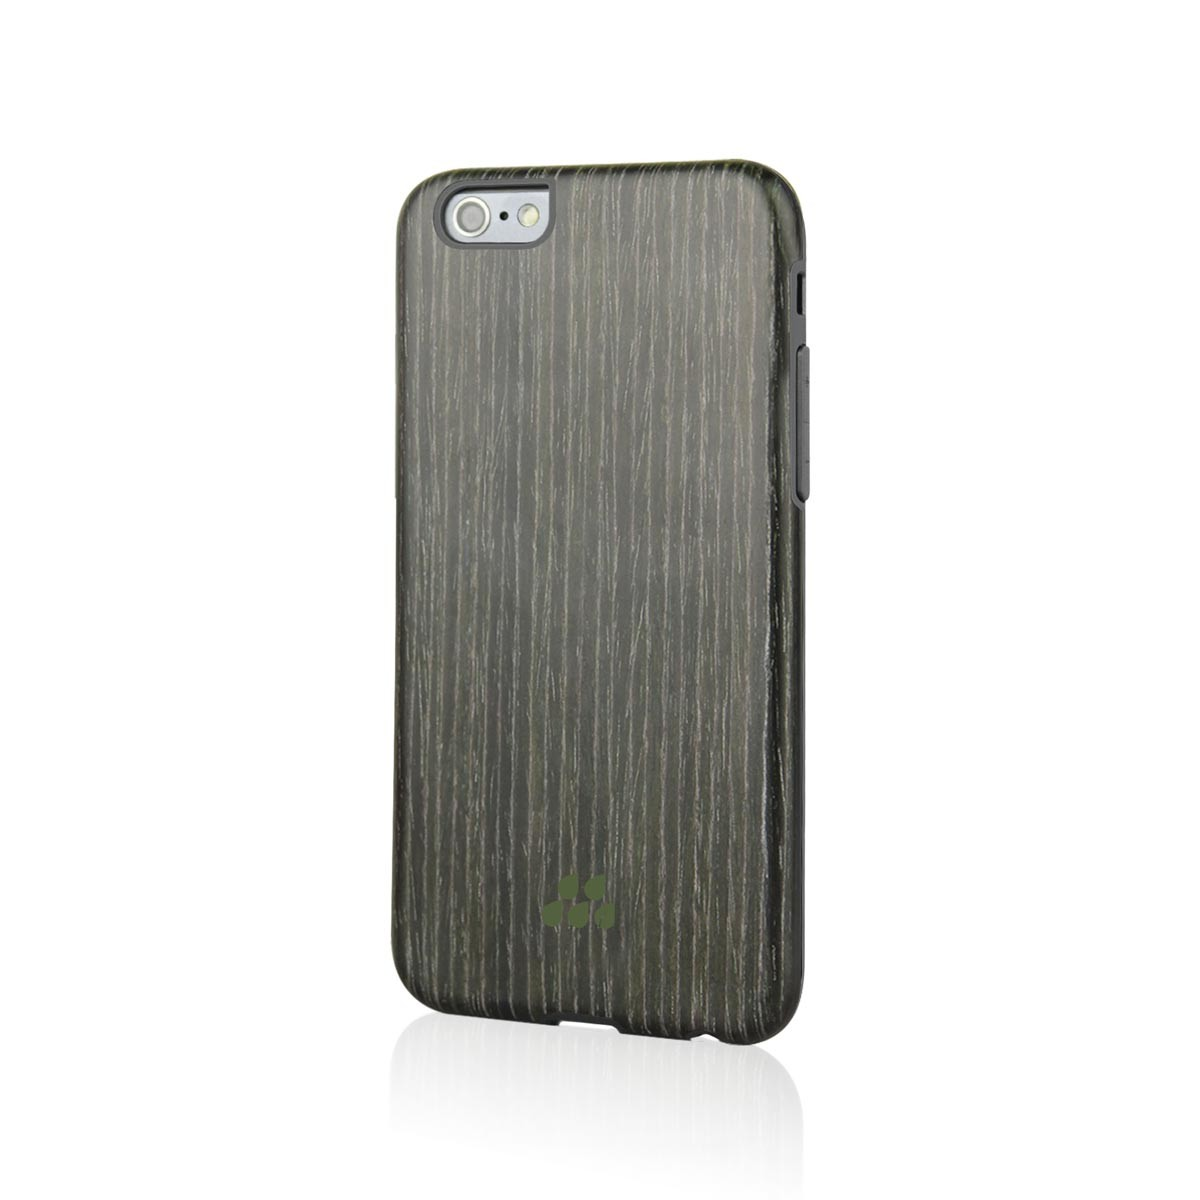 Evutec - Wood SI for iPhone 6/6s - Black Apricot